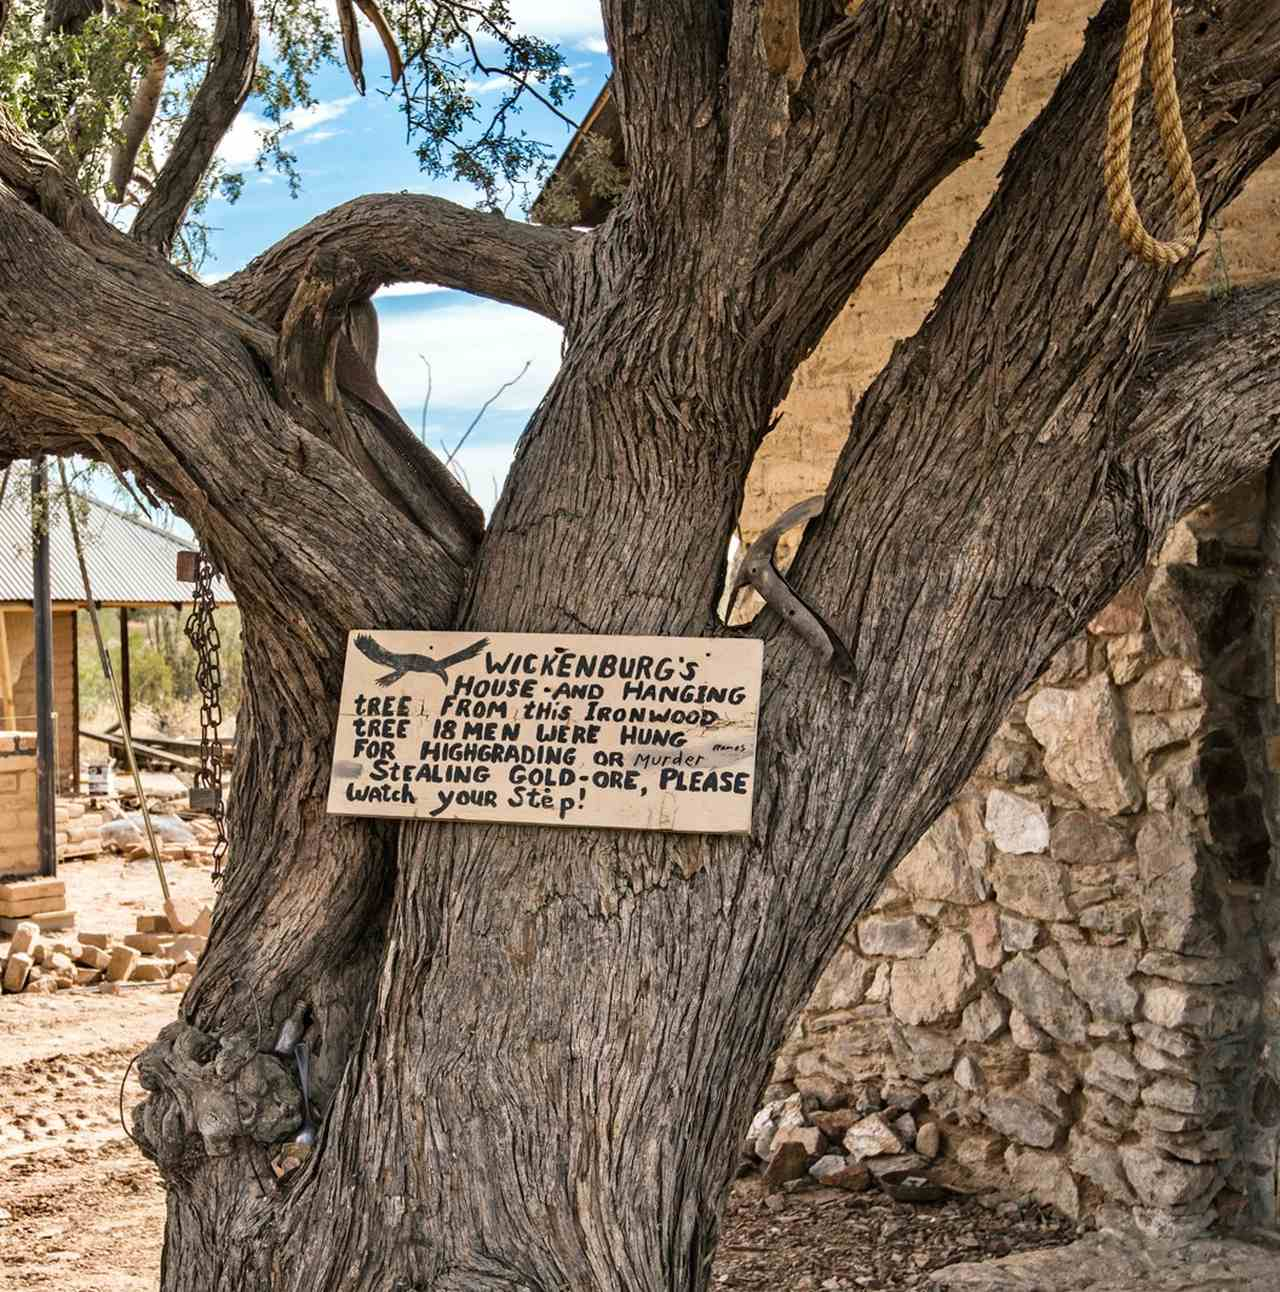 Hanging Tree in Vulture City